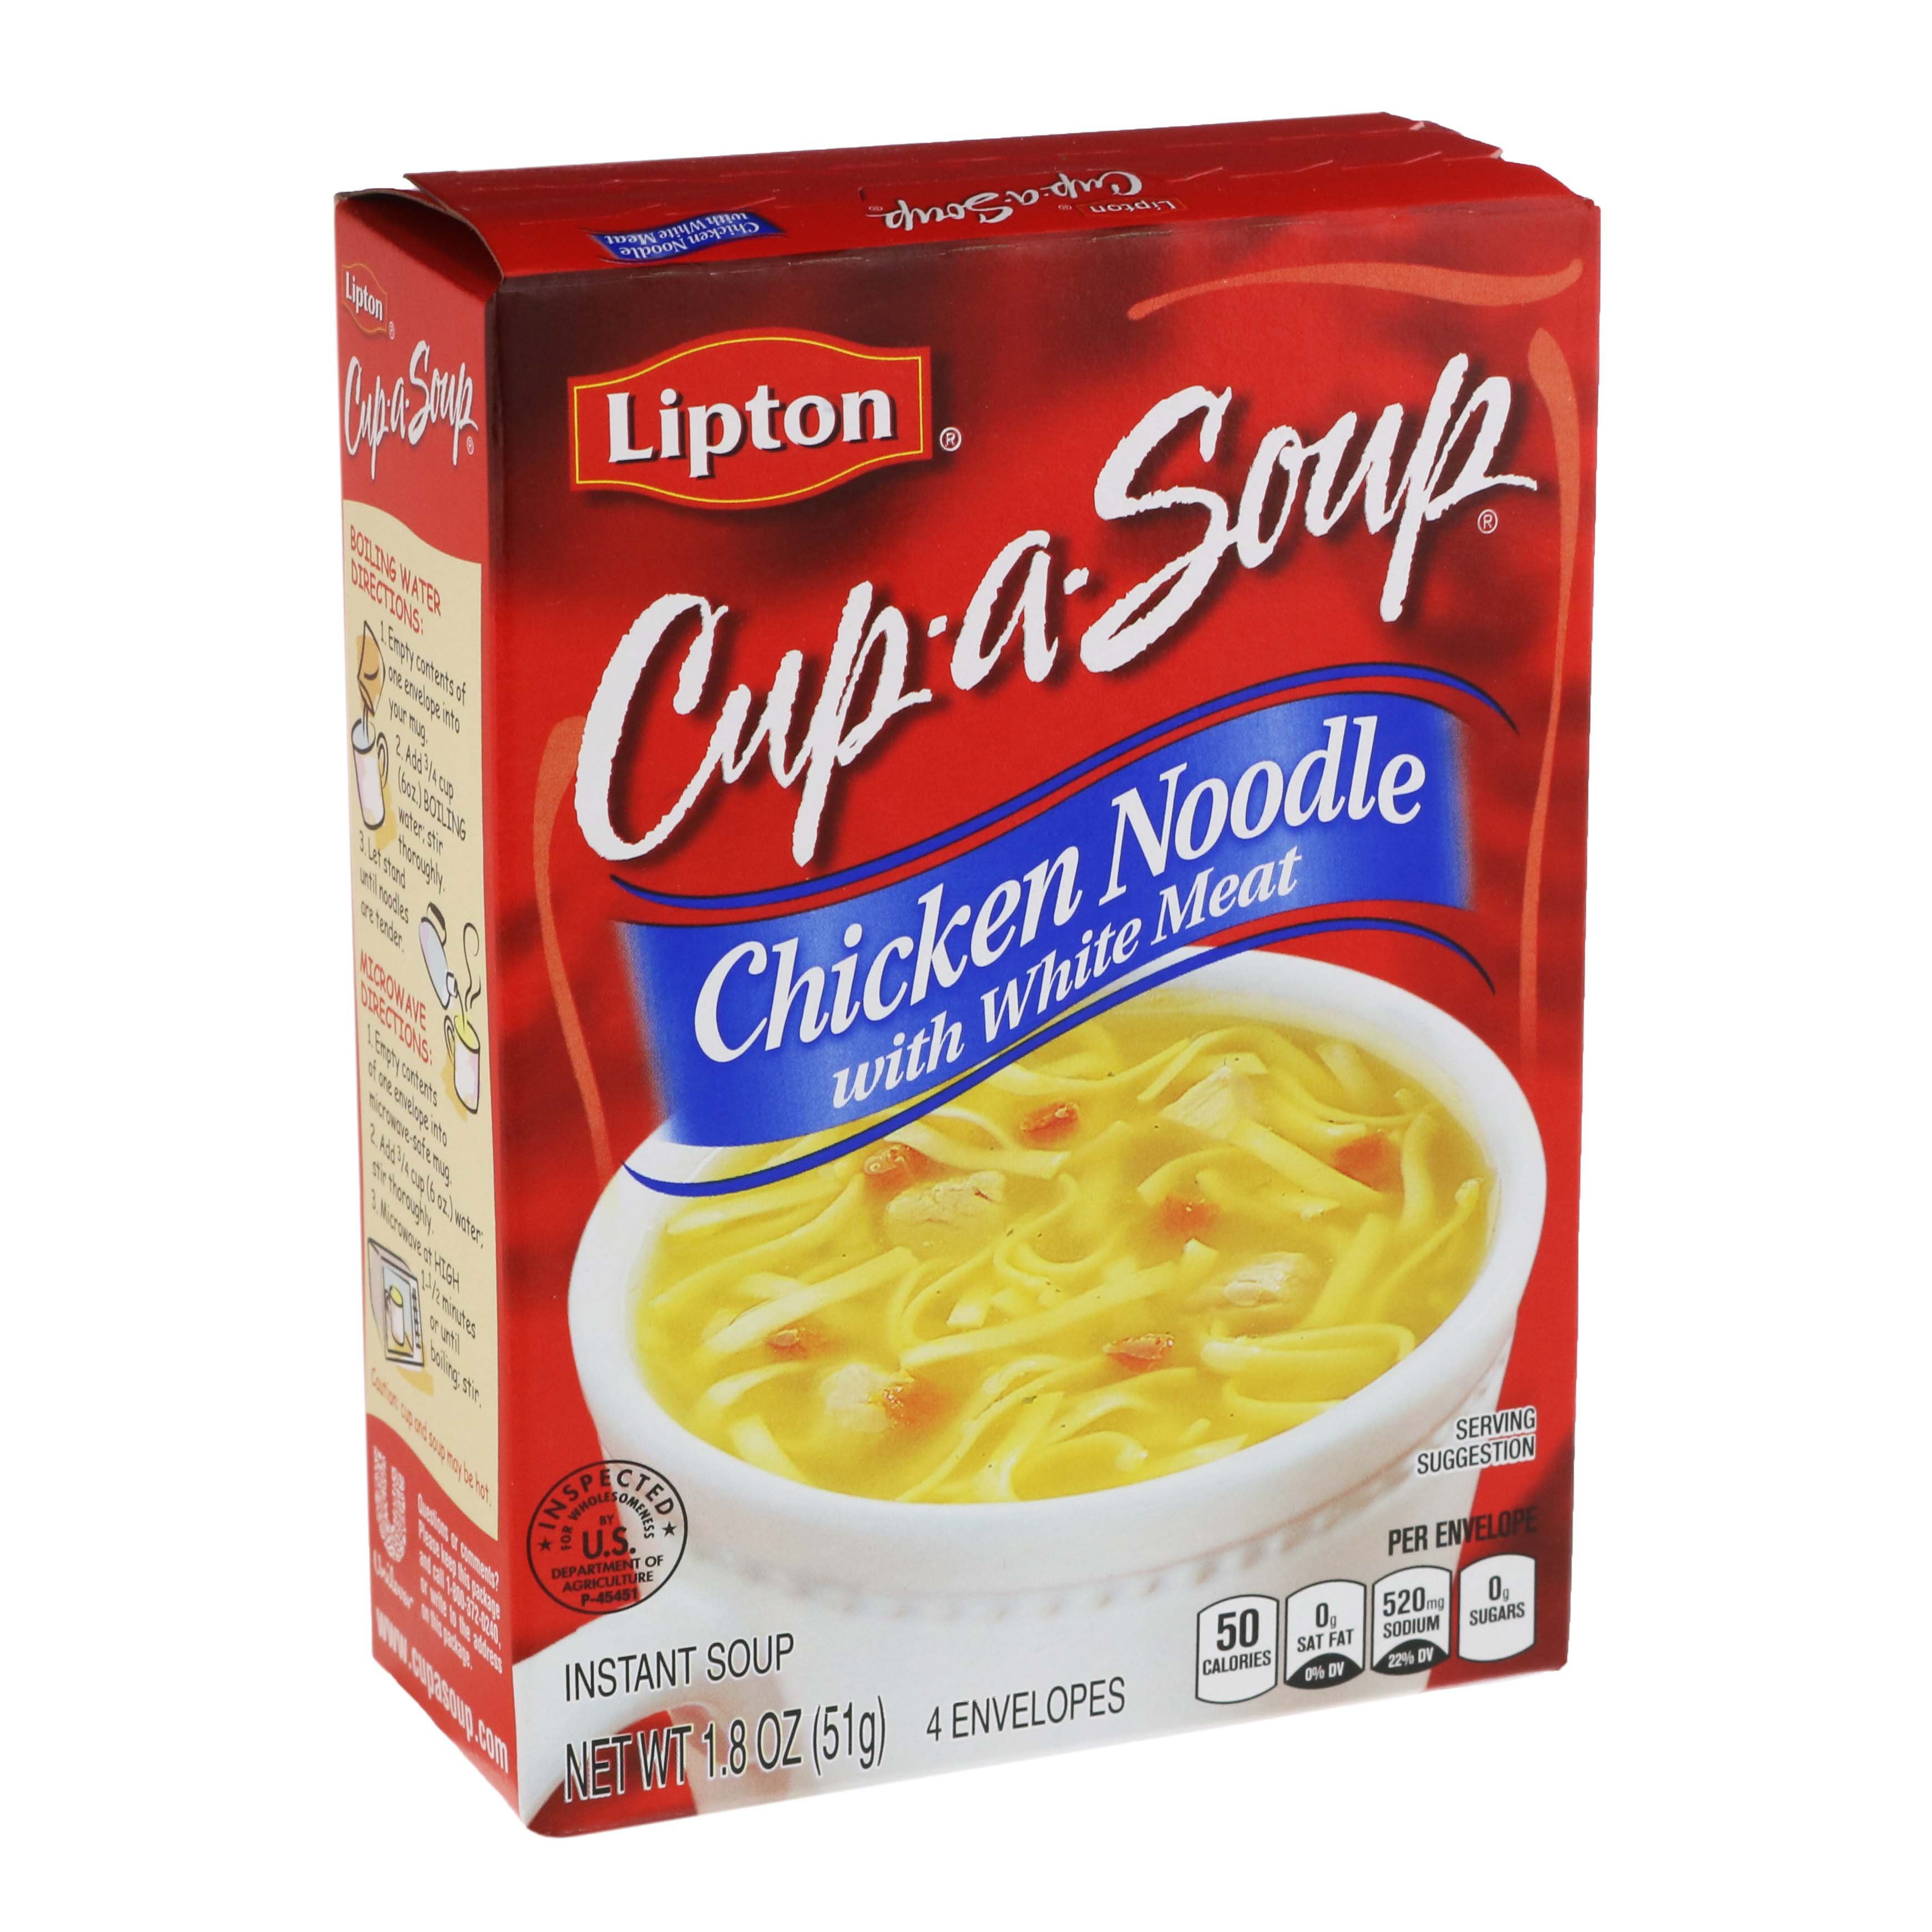 The Lipton Cup-a-Soup Instant Soup Mix Chicken Noodle with Meat